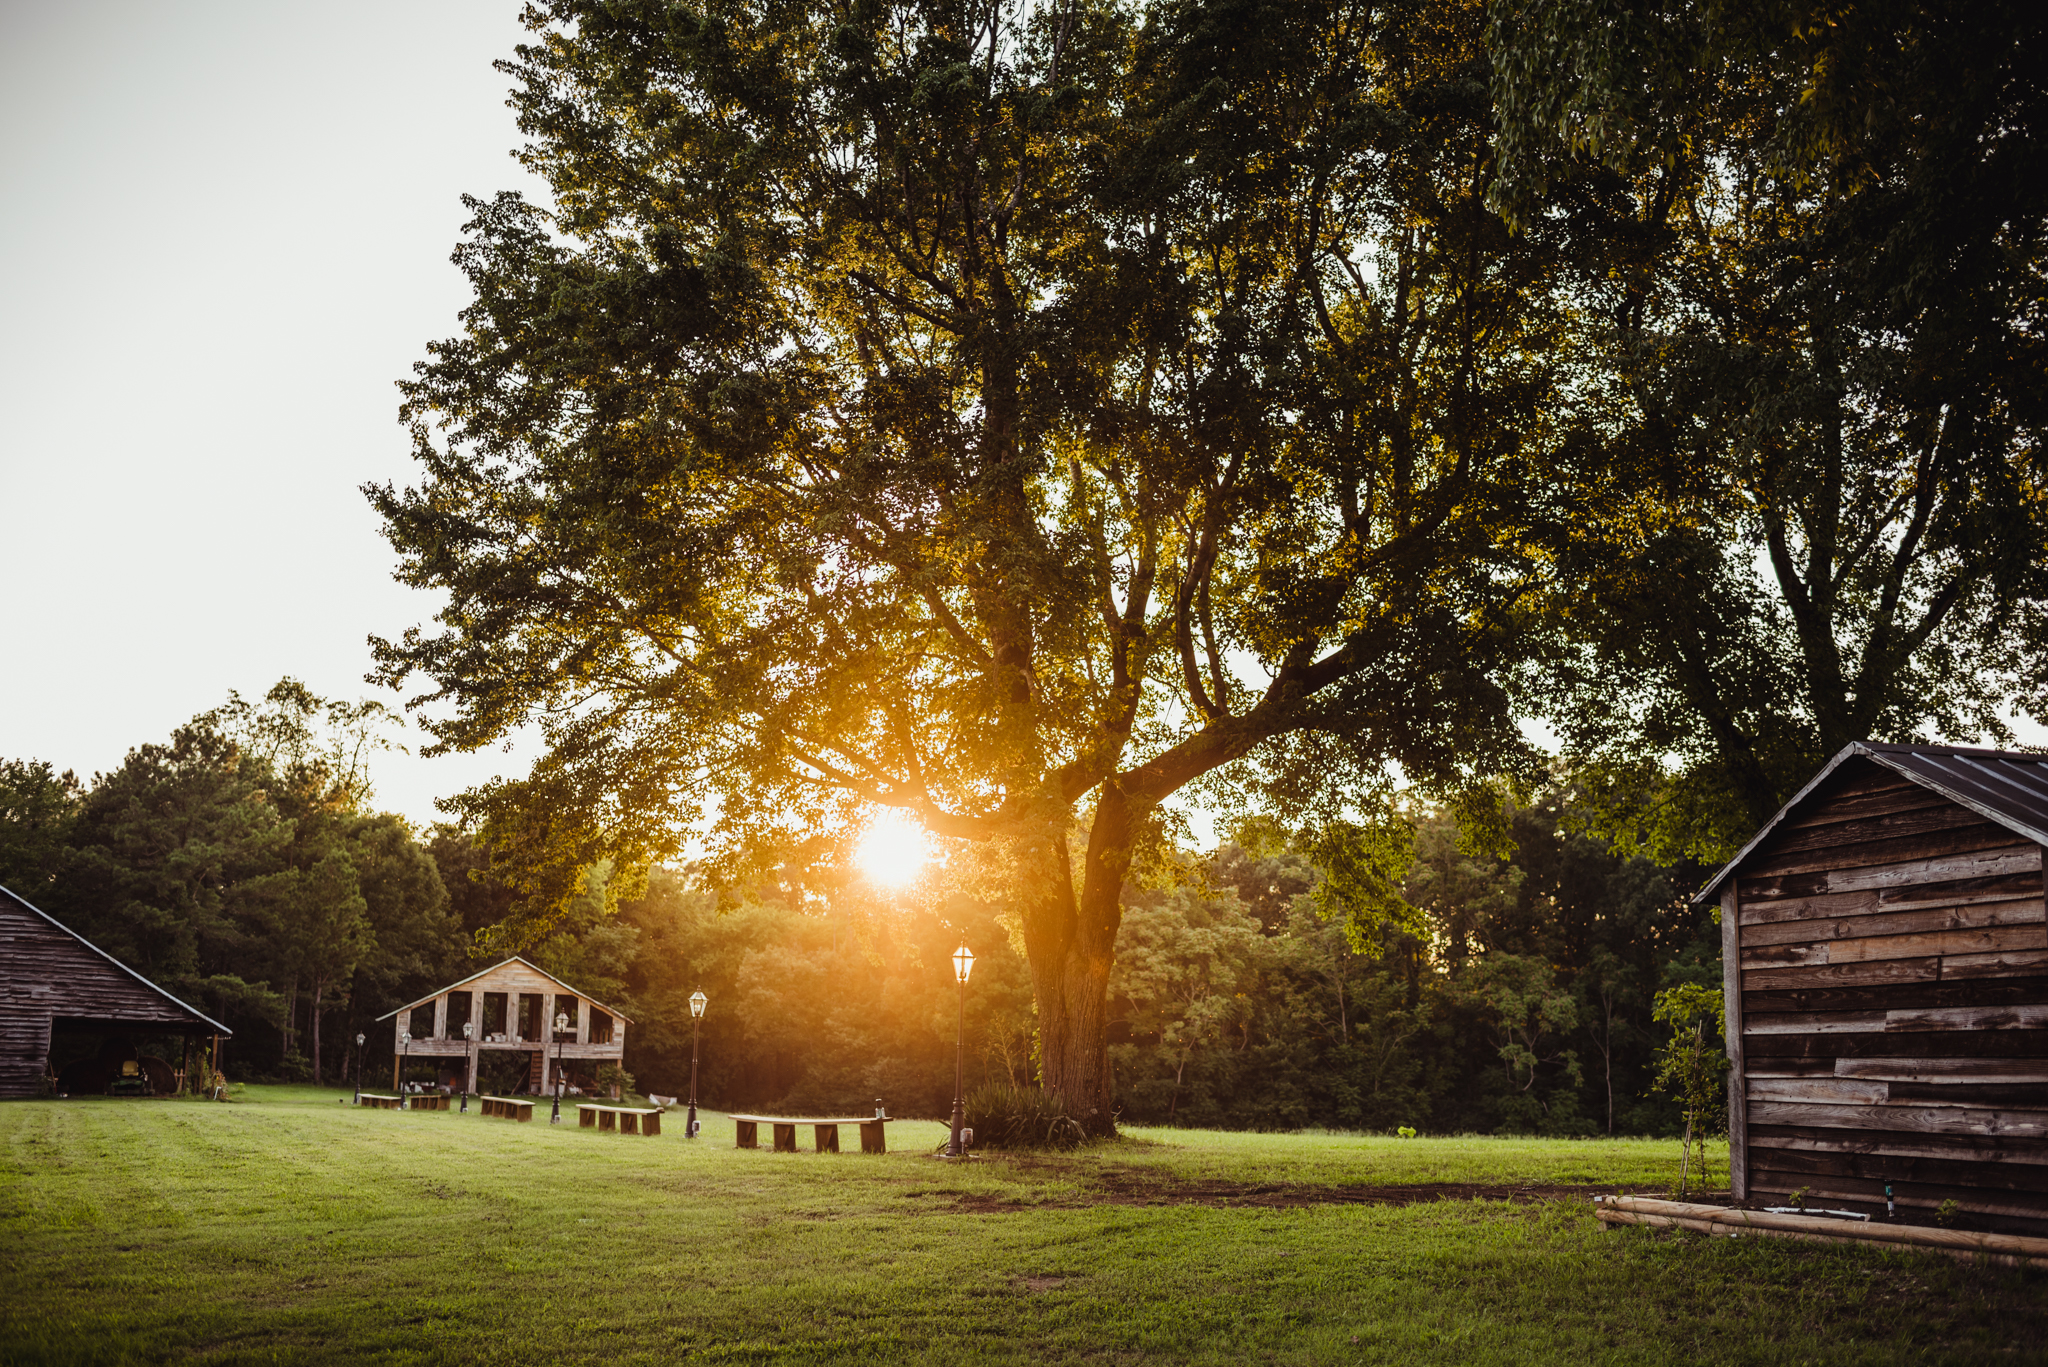 Sunset at the beautiful Warren Estate in Warrenton, North Carolina, picture by Rose Trail Images.